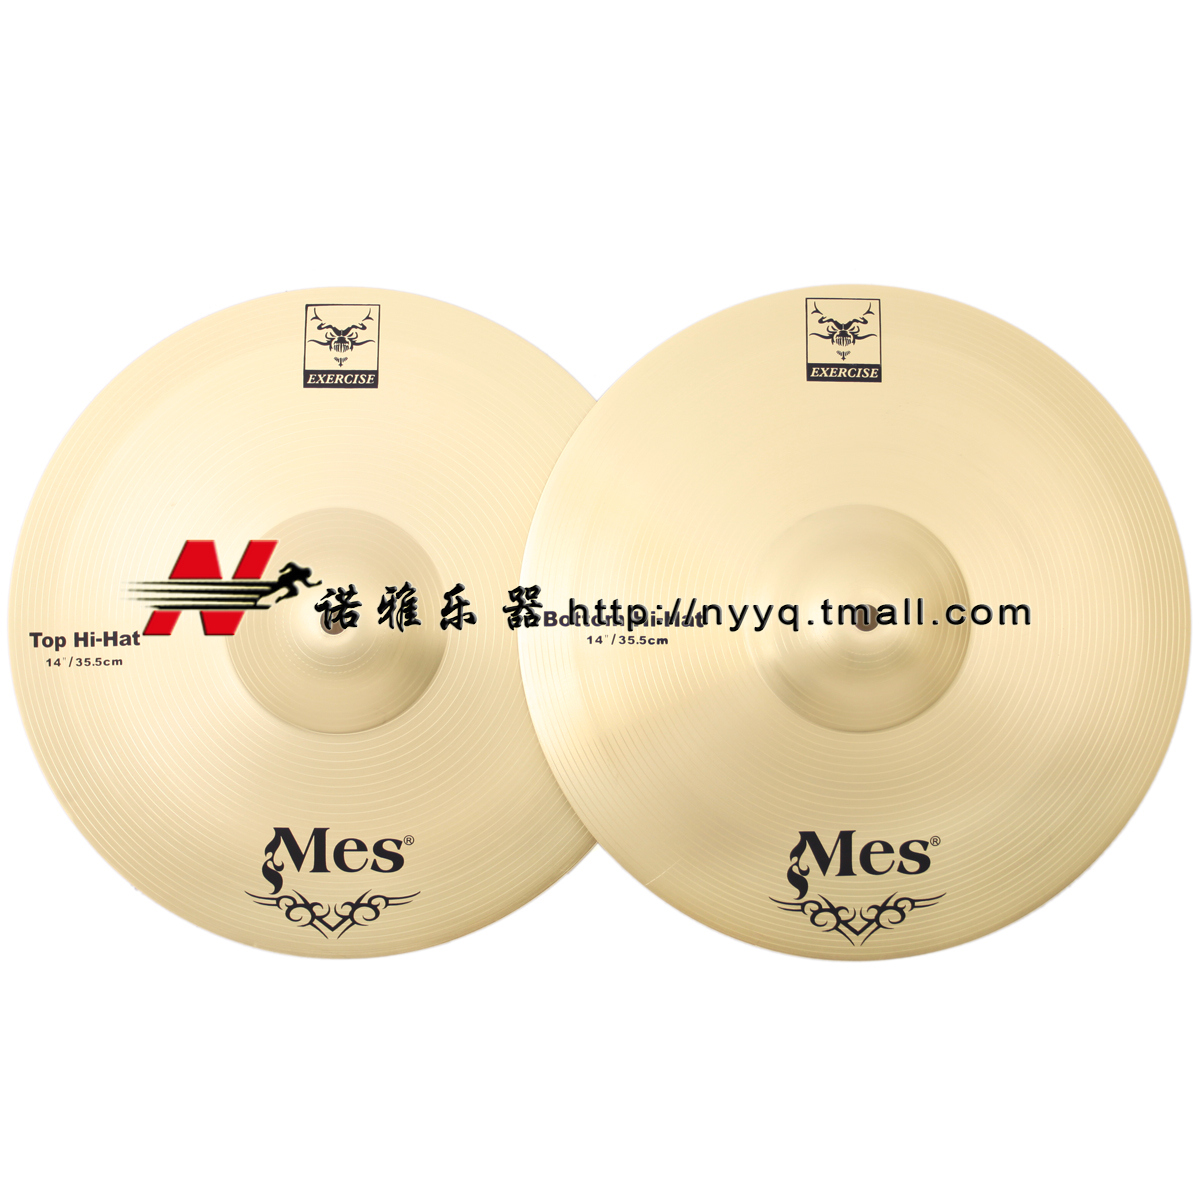 ee02fc4bf25 Get Quotations · Mes q7 cymbal cymbal 14 inch 1 tread cymbal cymbal hihat  two tablets